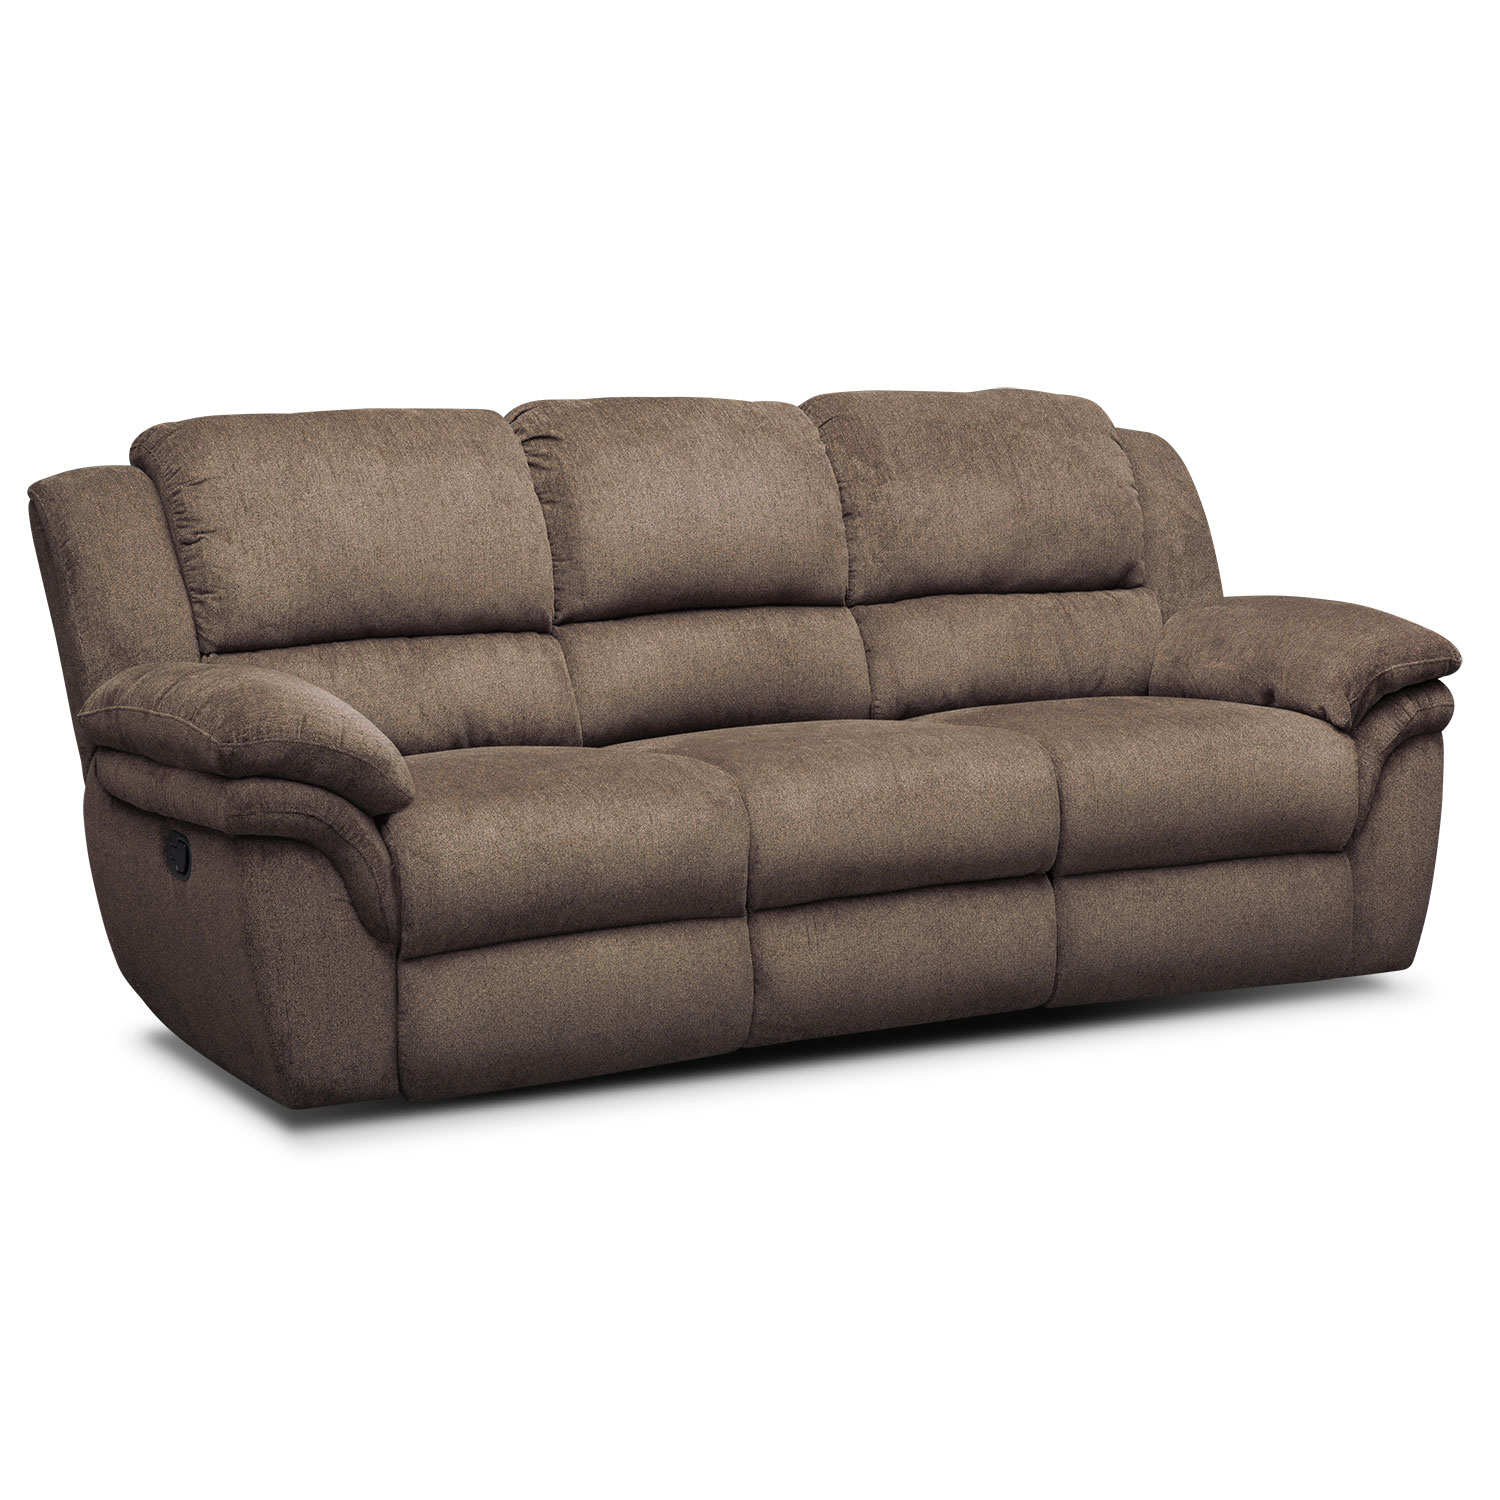 aldo manual reclining sofa - mocha UYGVAZY